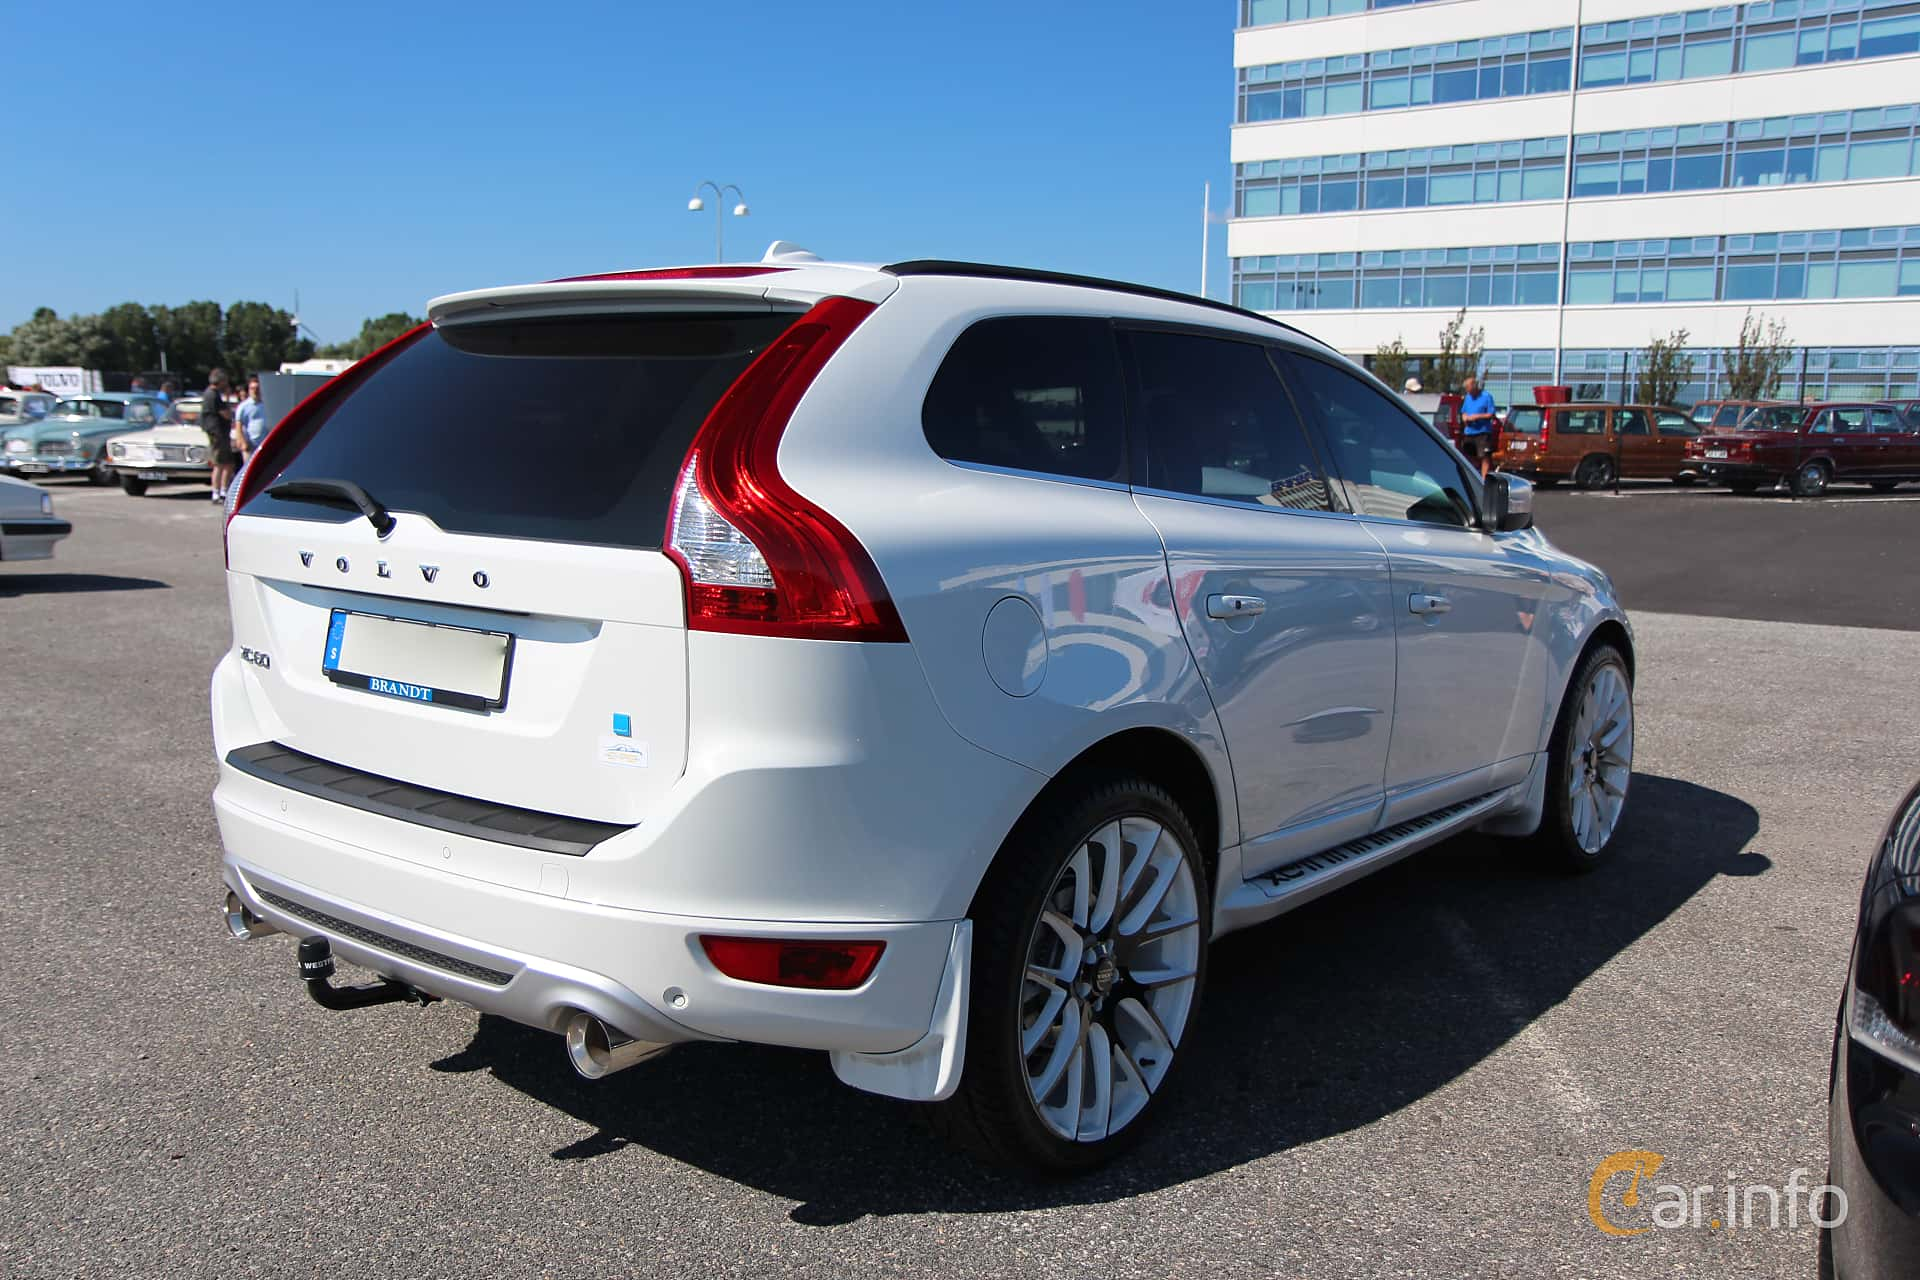 Volvo Xc60 2 0 D4 Geartronic 163hp 2012 At Vrom Volvo Rendezvous Amp Owners Meeting 2015